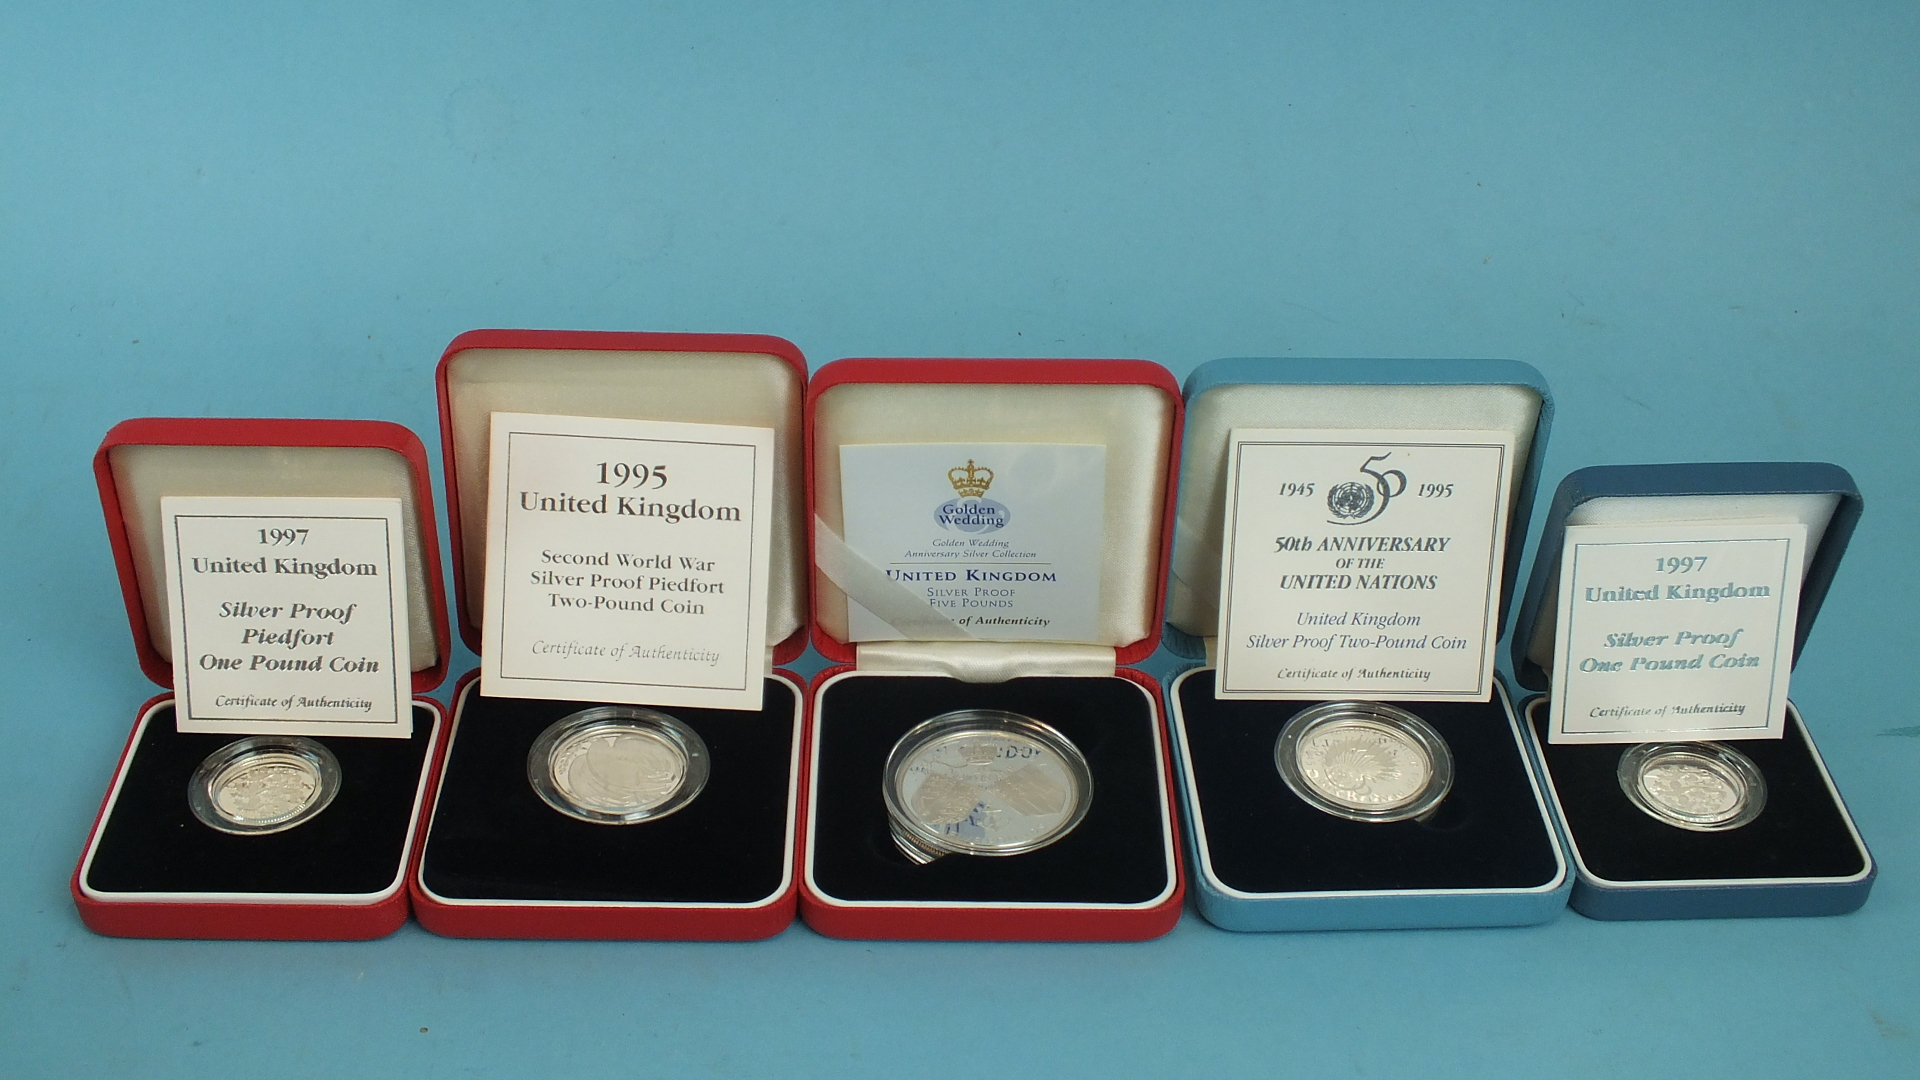 Lot 47 - Five Royal Mint cased coins, including a silver proof 1995 £2 coin, (50th Anniversary of the